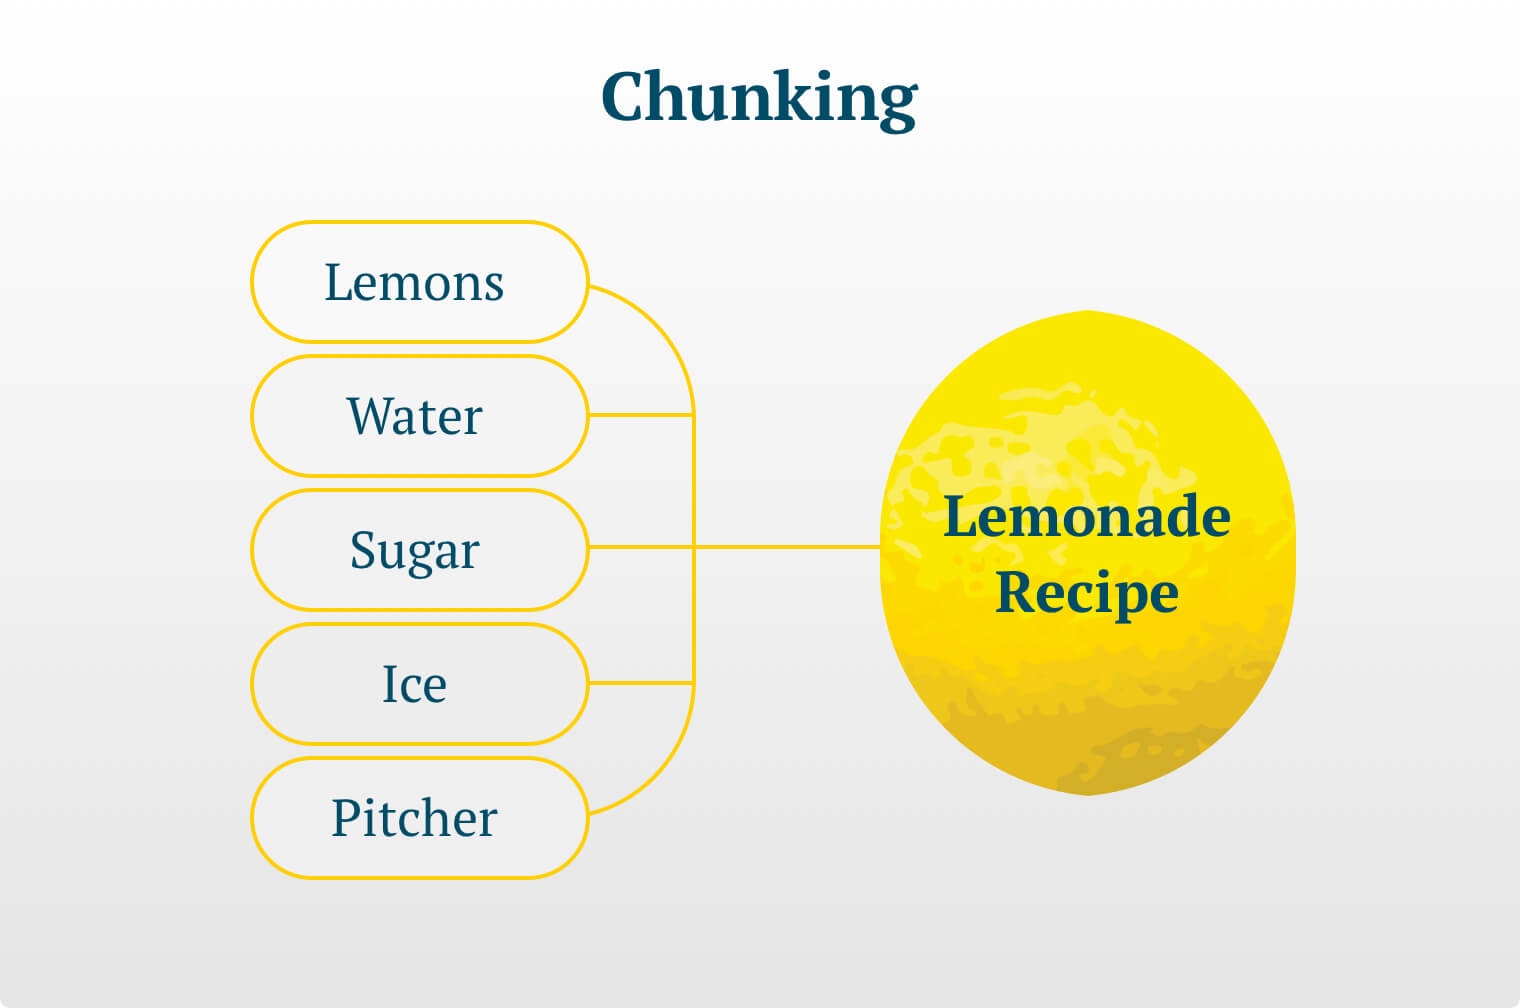 "Titled ""Chunking"" this creative features an image of a lemon with text illustrating the concept of chunking. On the left the text reads: Lemons, water, sugar, ice, pitcher. An arrow point to the right where these words are converted to the phrase ""Lemonade Recipe."""